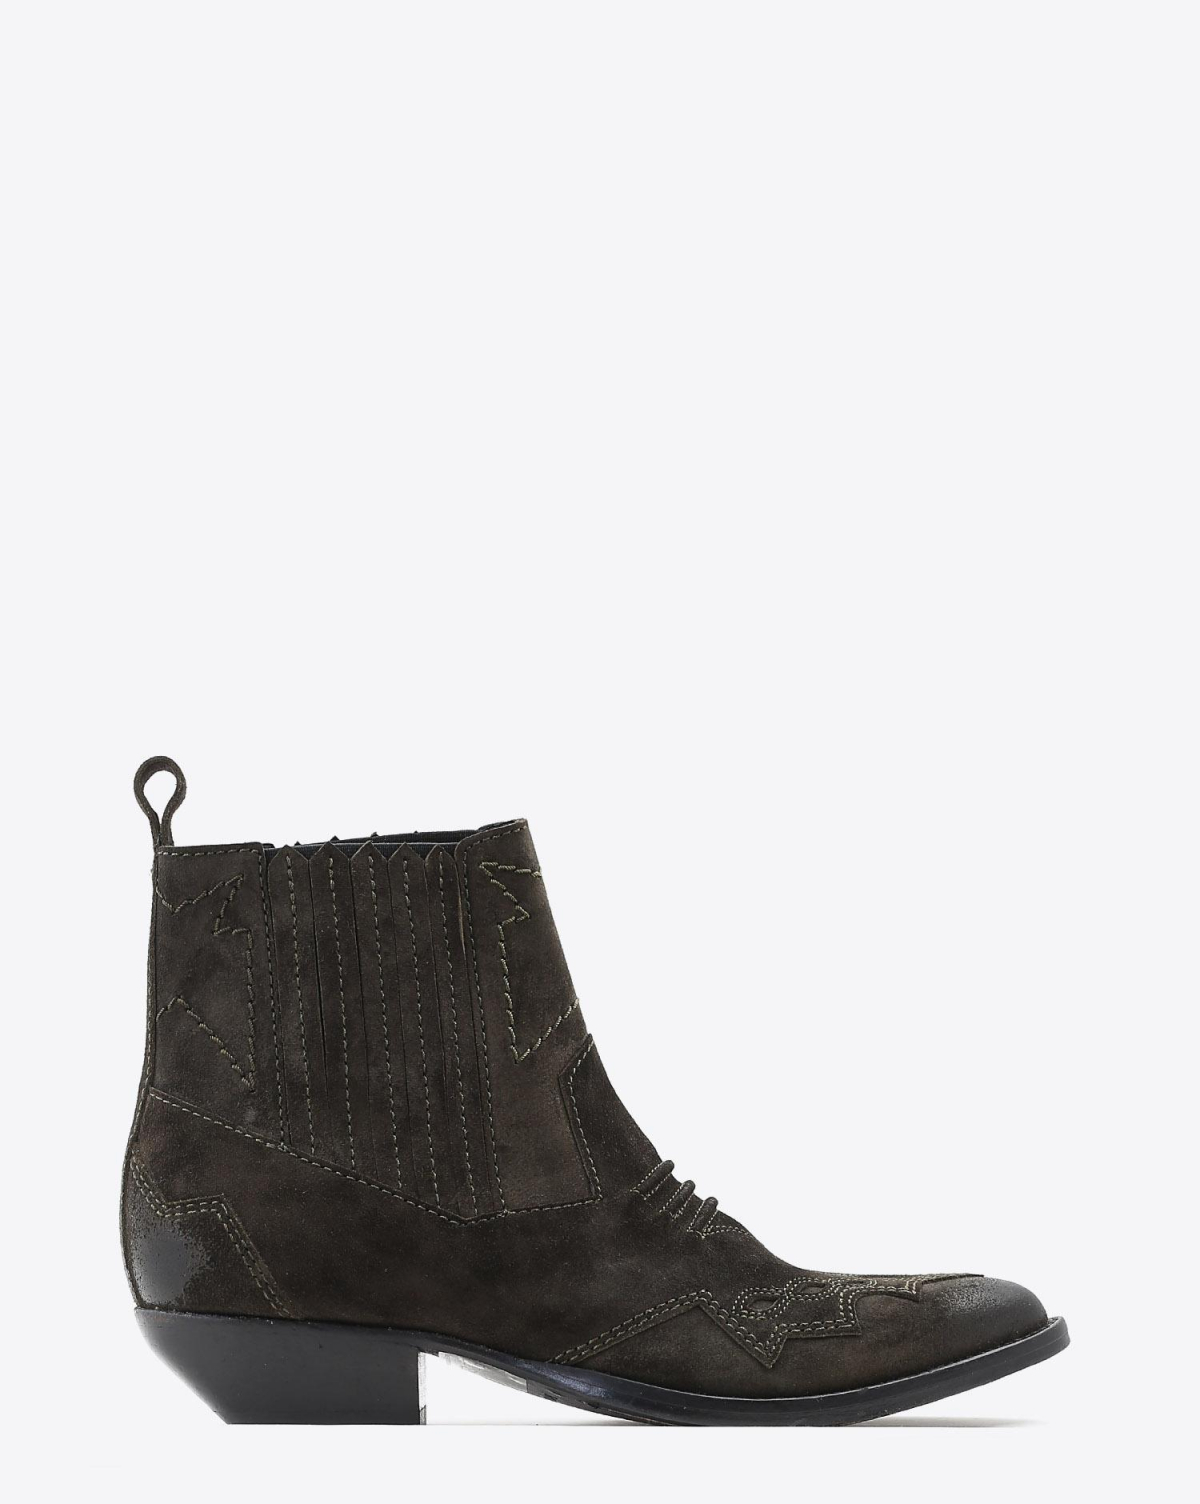 Roseanna Chaussures Boots Santiags TUCSON - Forêt Bronze